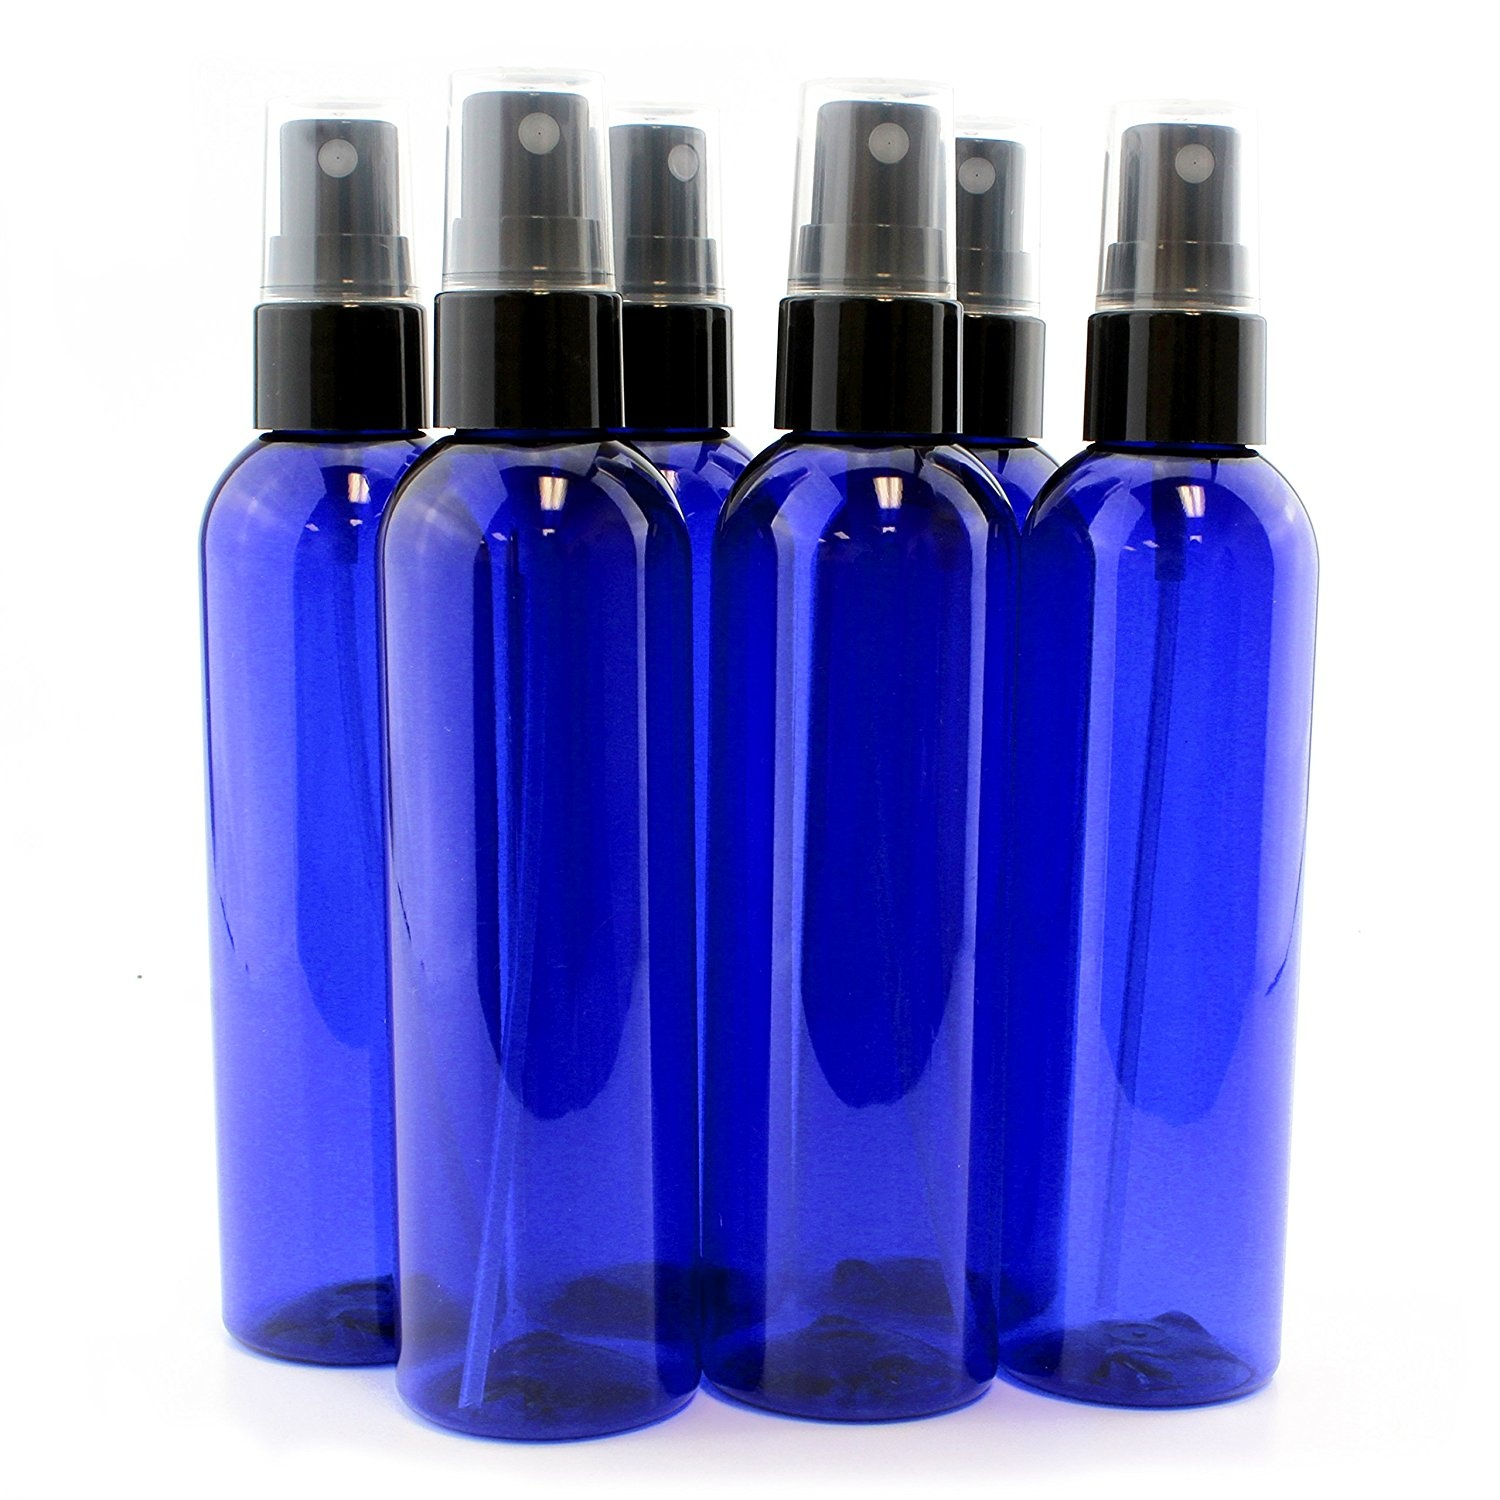 9ec68a093ca3 120ml Cobalt Blue Empty Plastic Refillable PET Spray Bottles with Fine Mist  Atomizer Caps (6-pack); for DIY Home Cleaning, Aromatherapy, Travel, ...